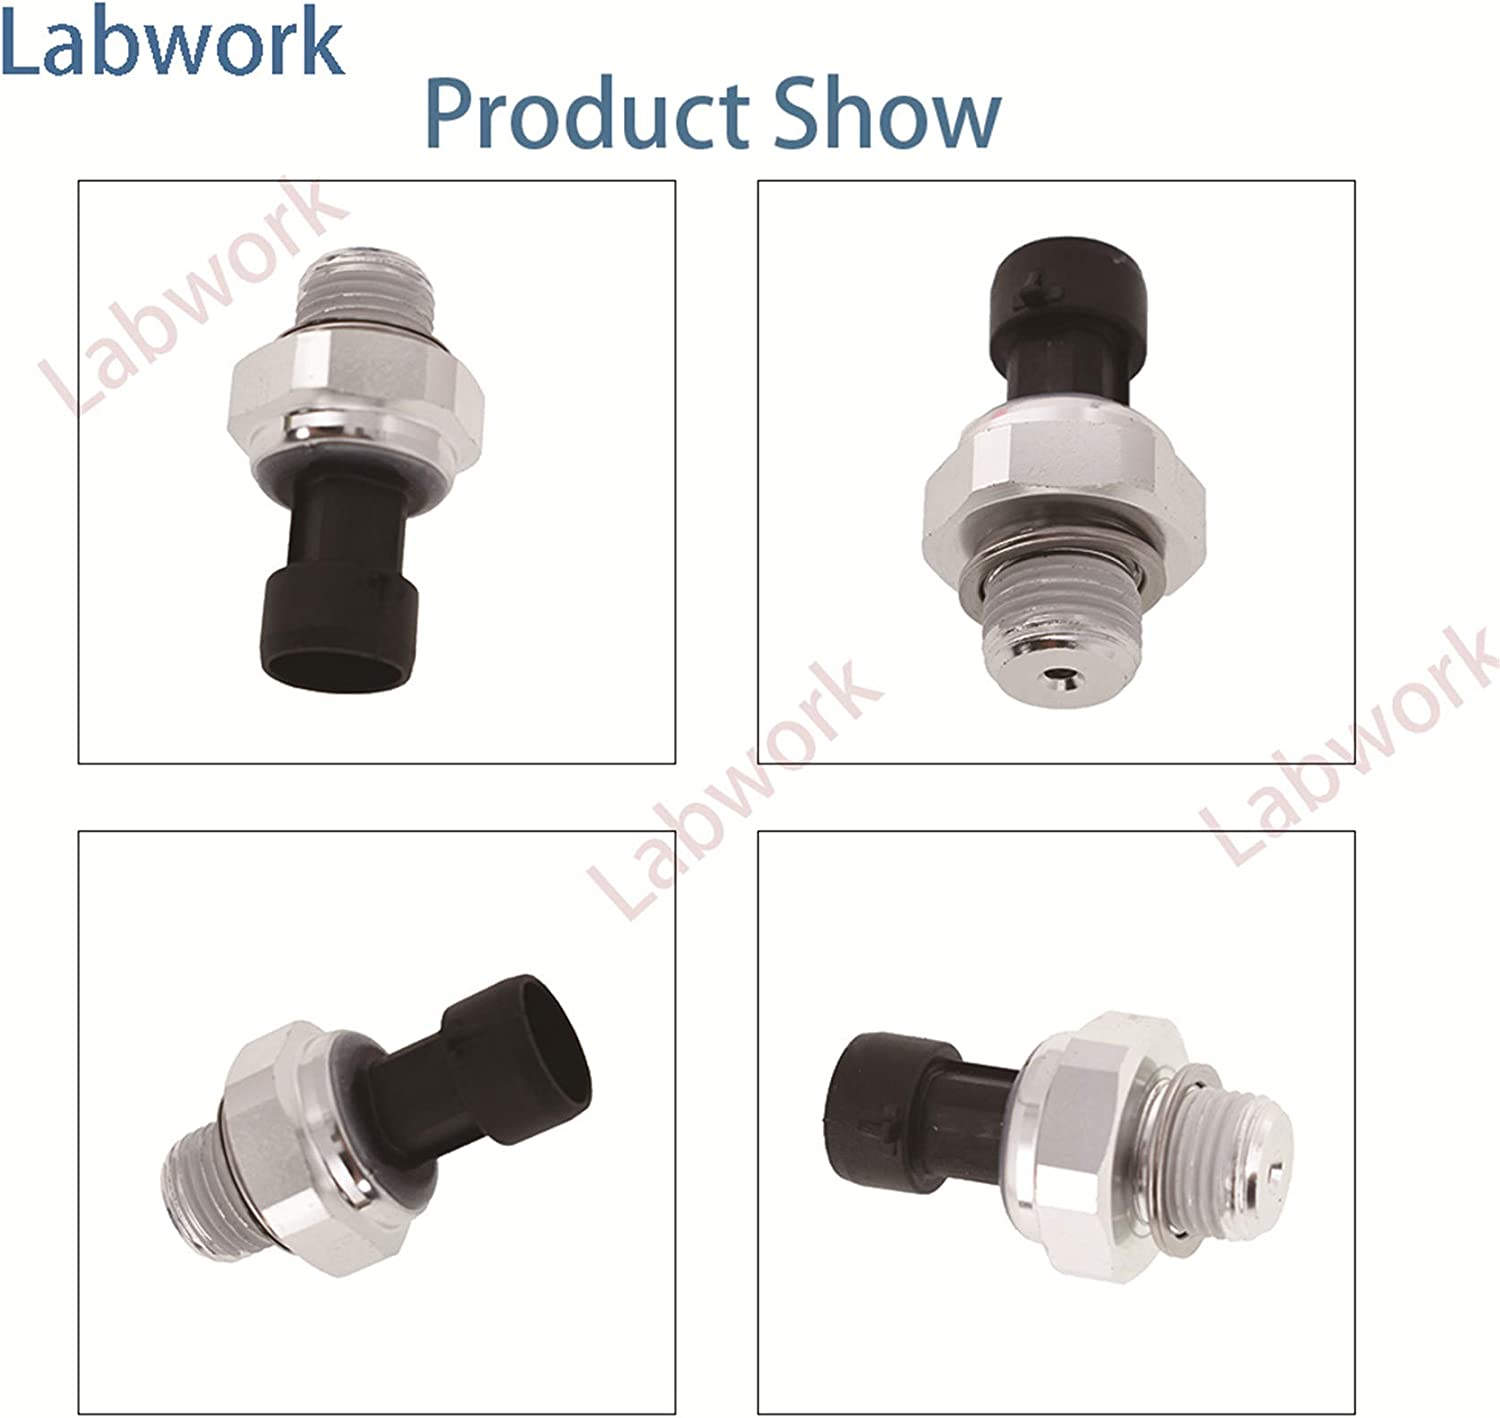 labwork 12677836 Oil Pressure Sensor Switch Replacement for Buick Cadillac Chevrolet GMC